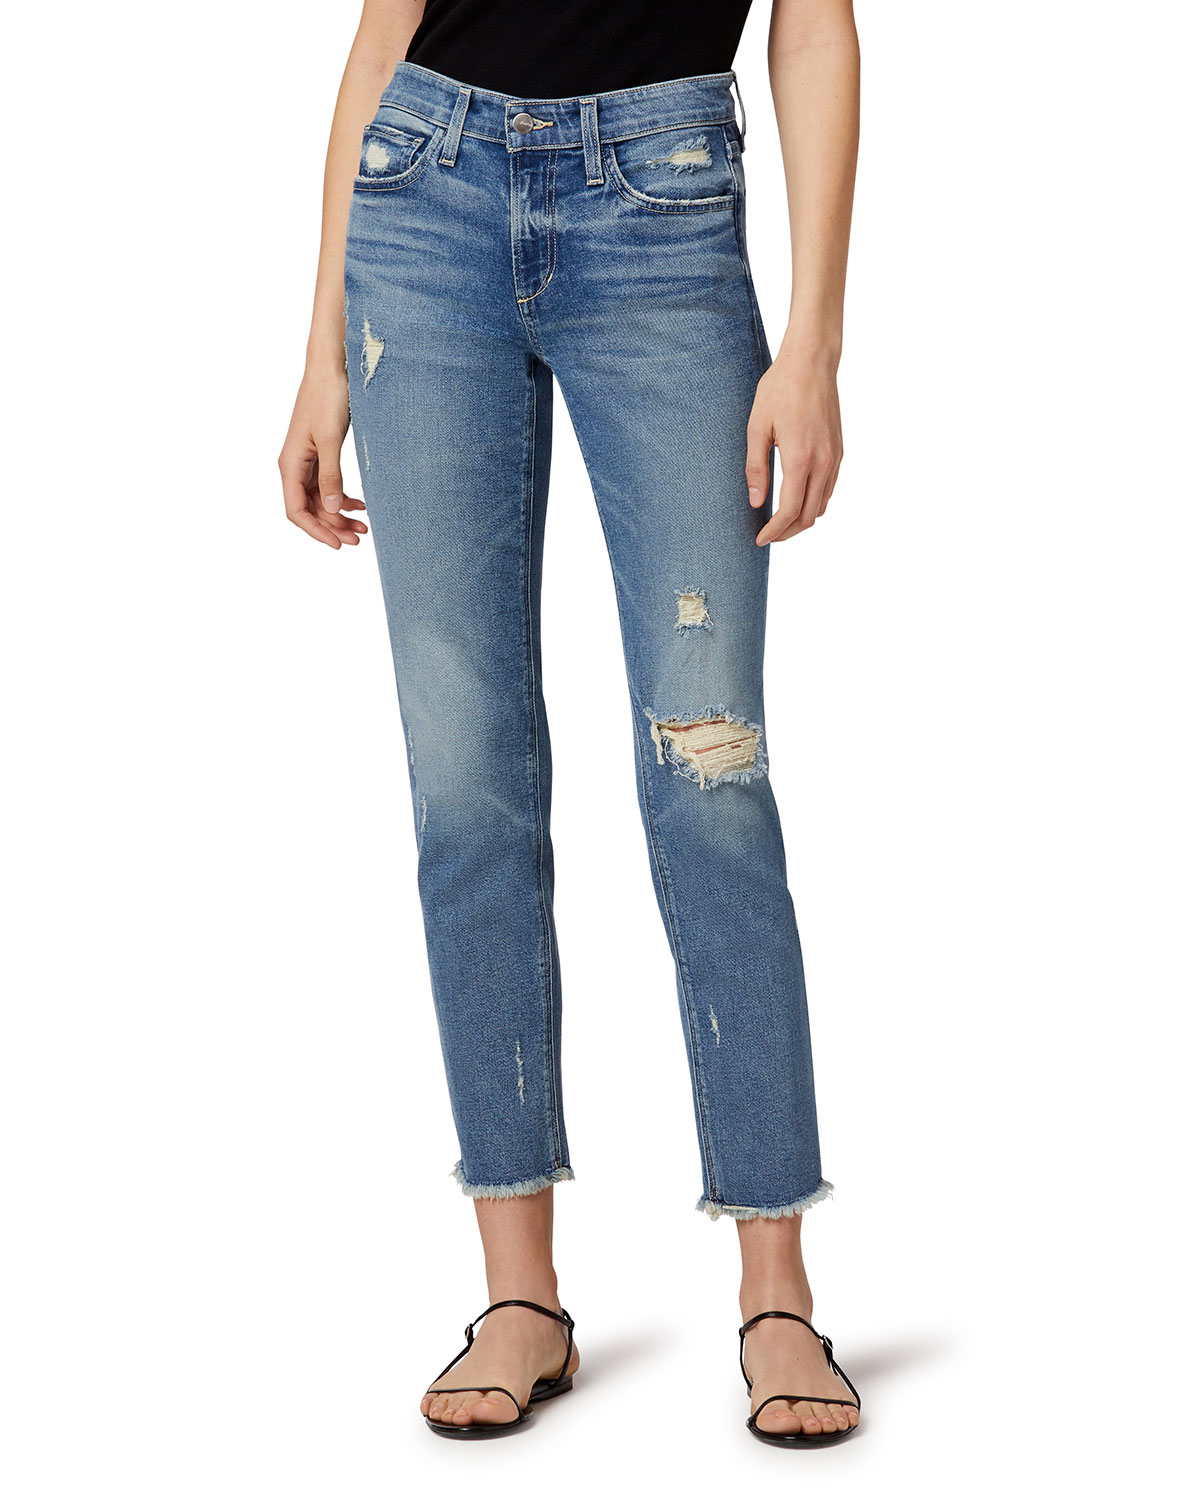 The Lara Ankle Jeans with Frayed Hem